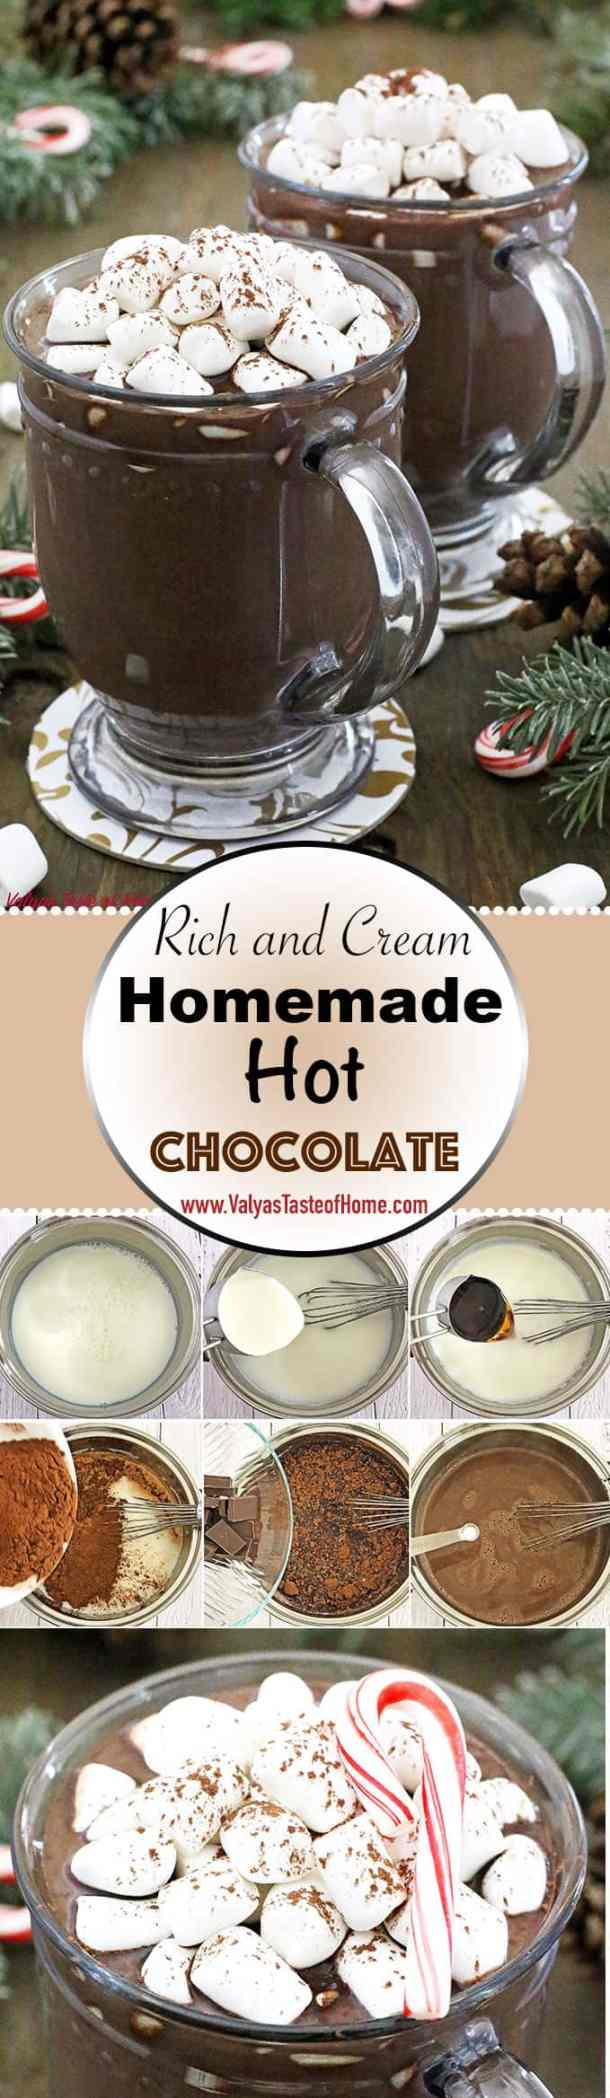 Making Rich and Creamy Homemade Hot Chocolate at home has never been easier! This rich and creamy hot cocoa make from scratch out of the ingredients you most likely to have on hand taste undescribable tasty!